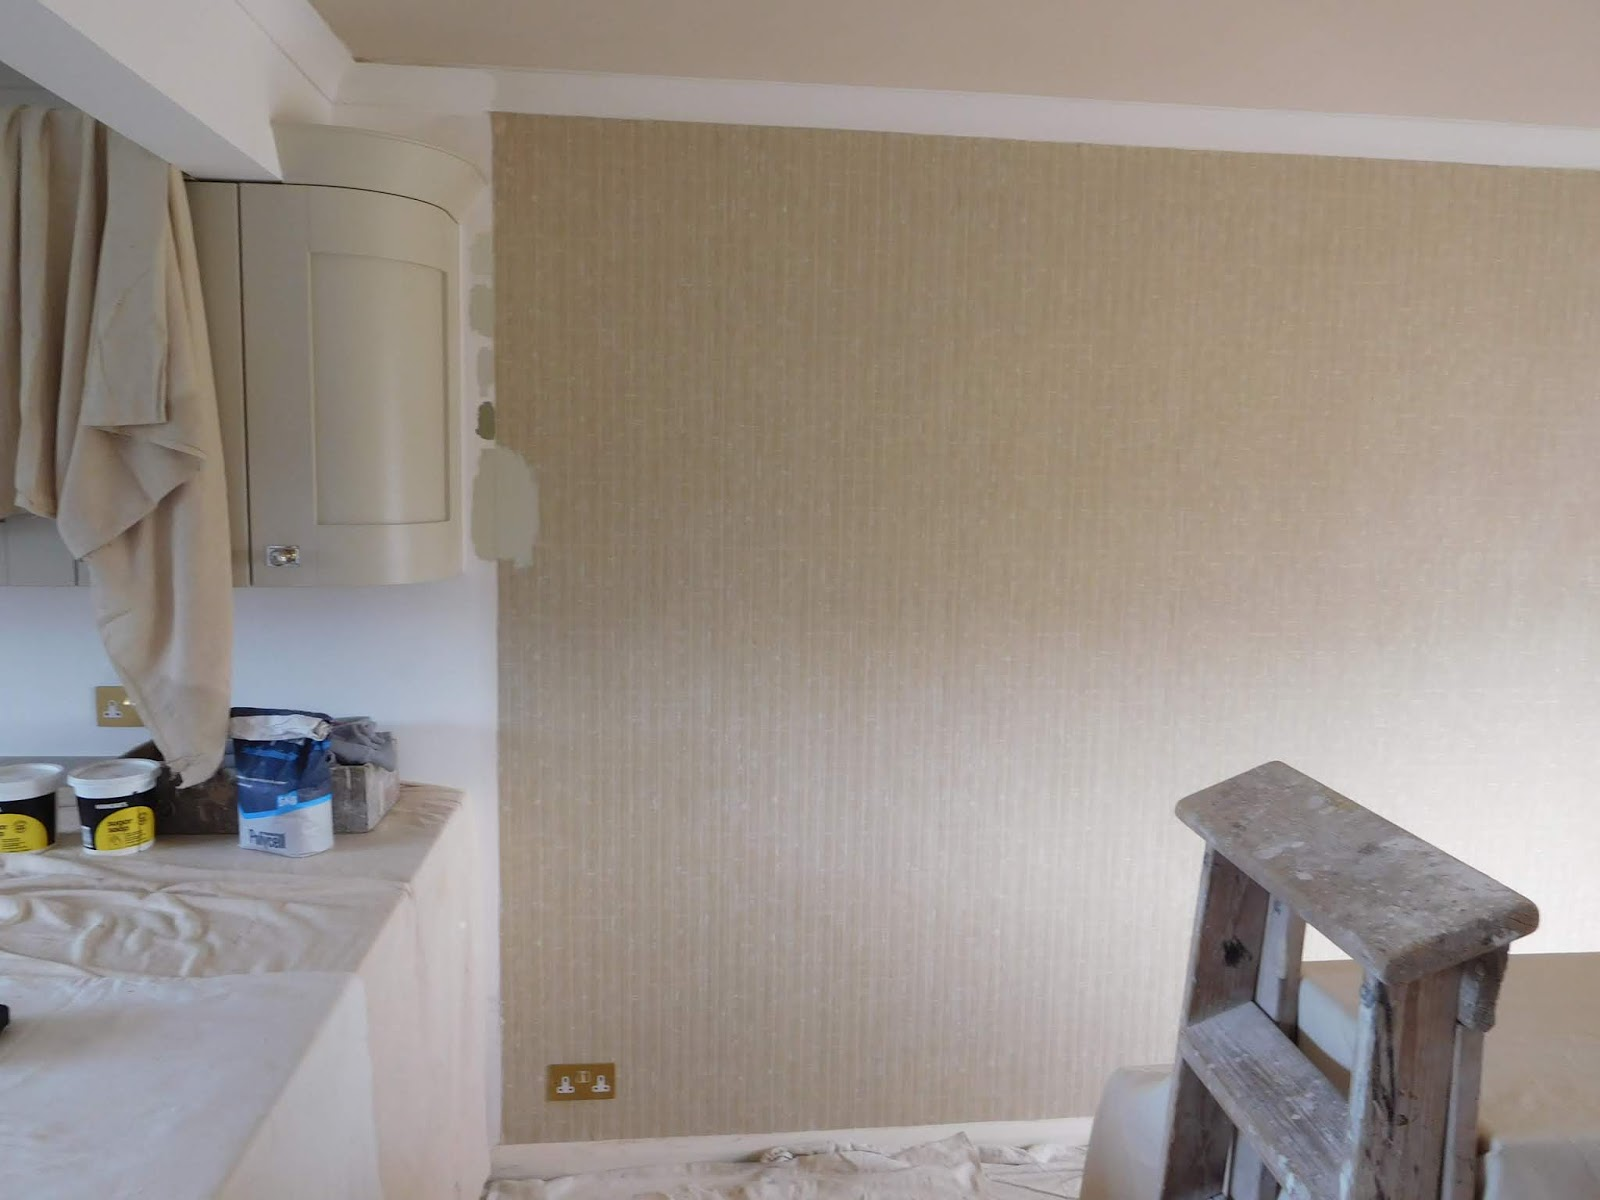 One Half Of The Room Is The Kitchen Area, Which Is Newish   New Kitchen  Units Fitted U0026 Walls In New Plaster. The Other Half Of The Room Is The  Original ...